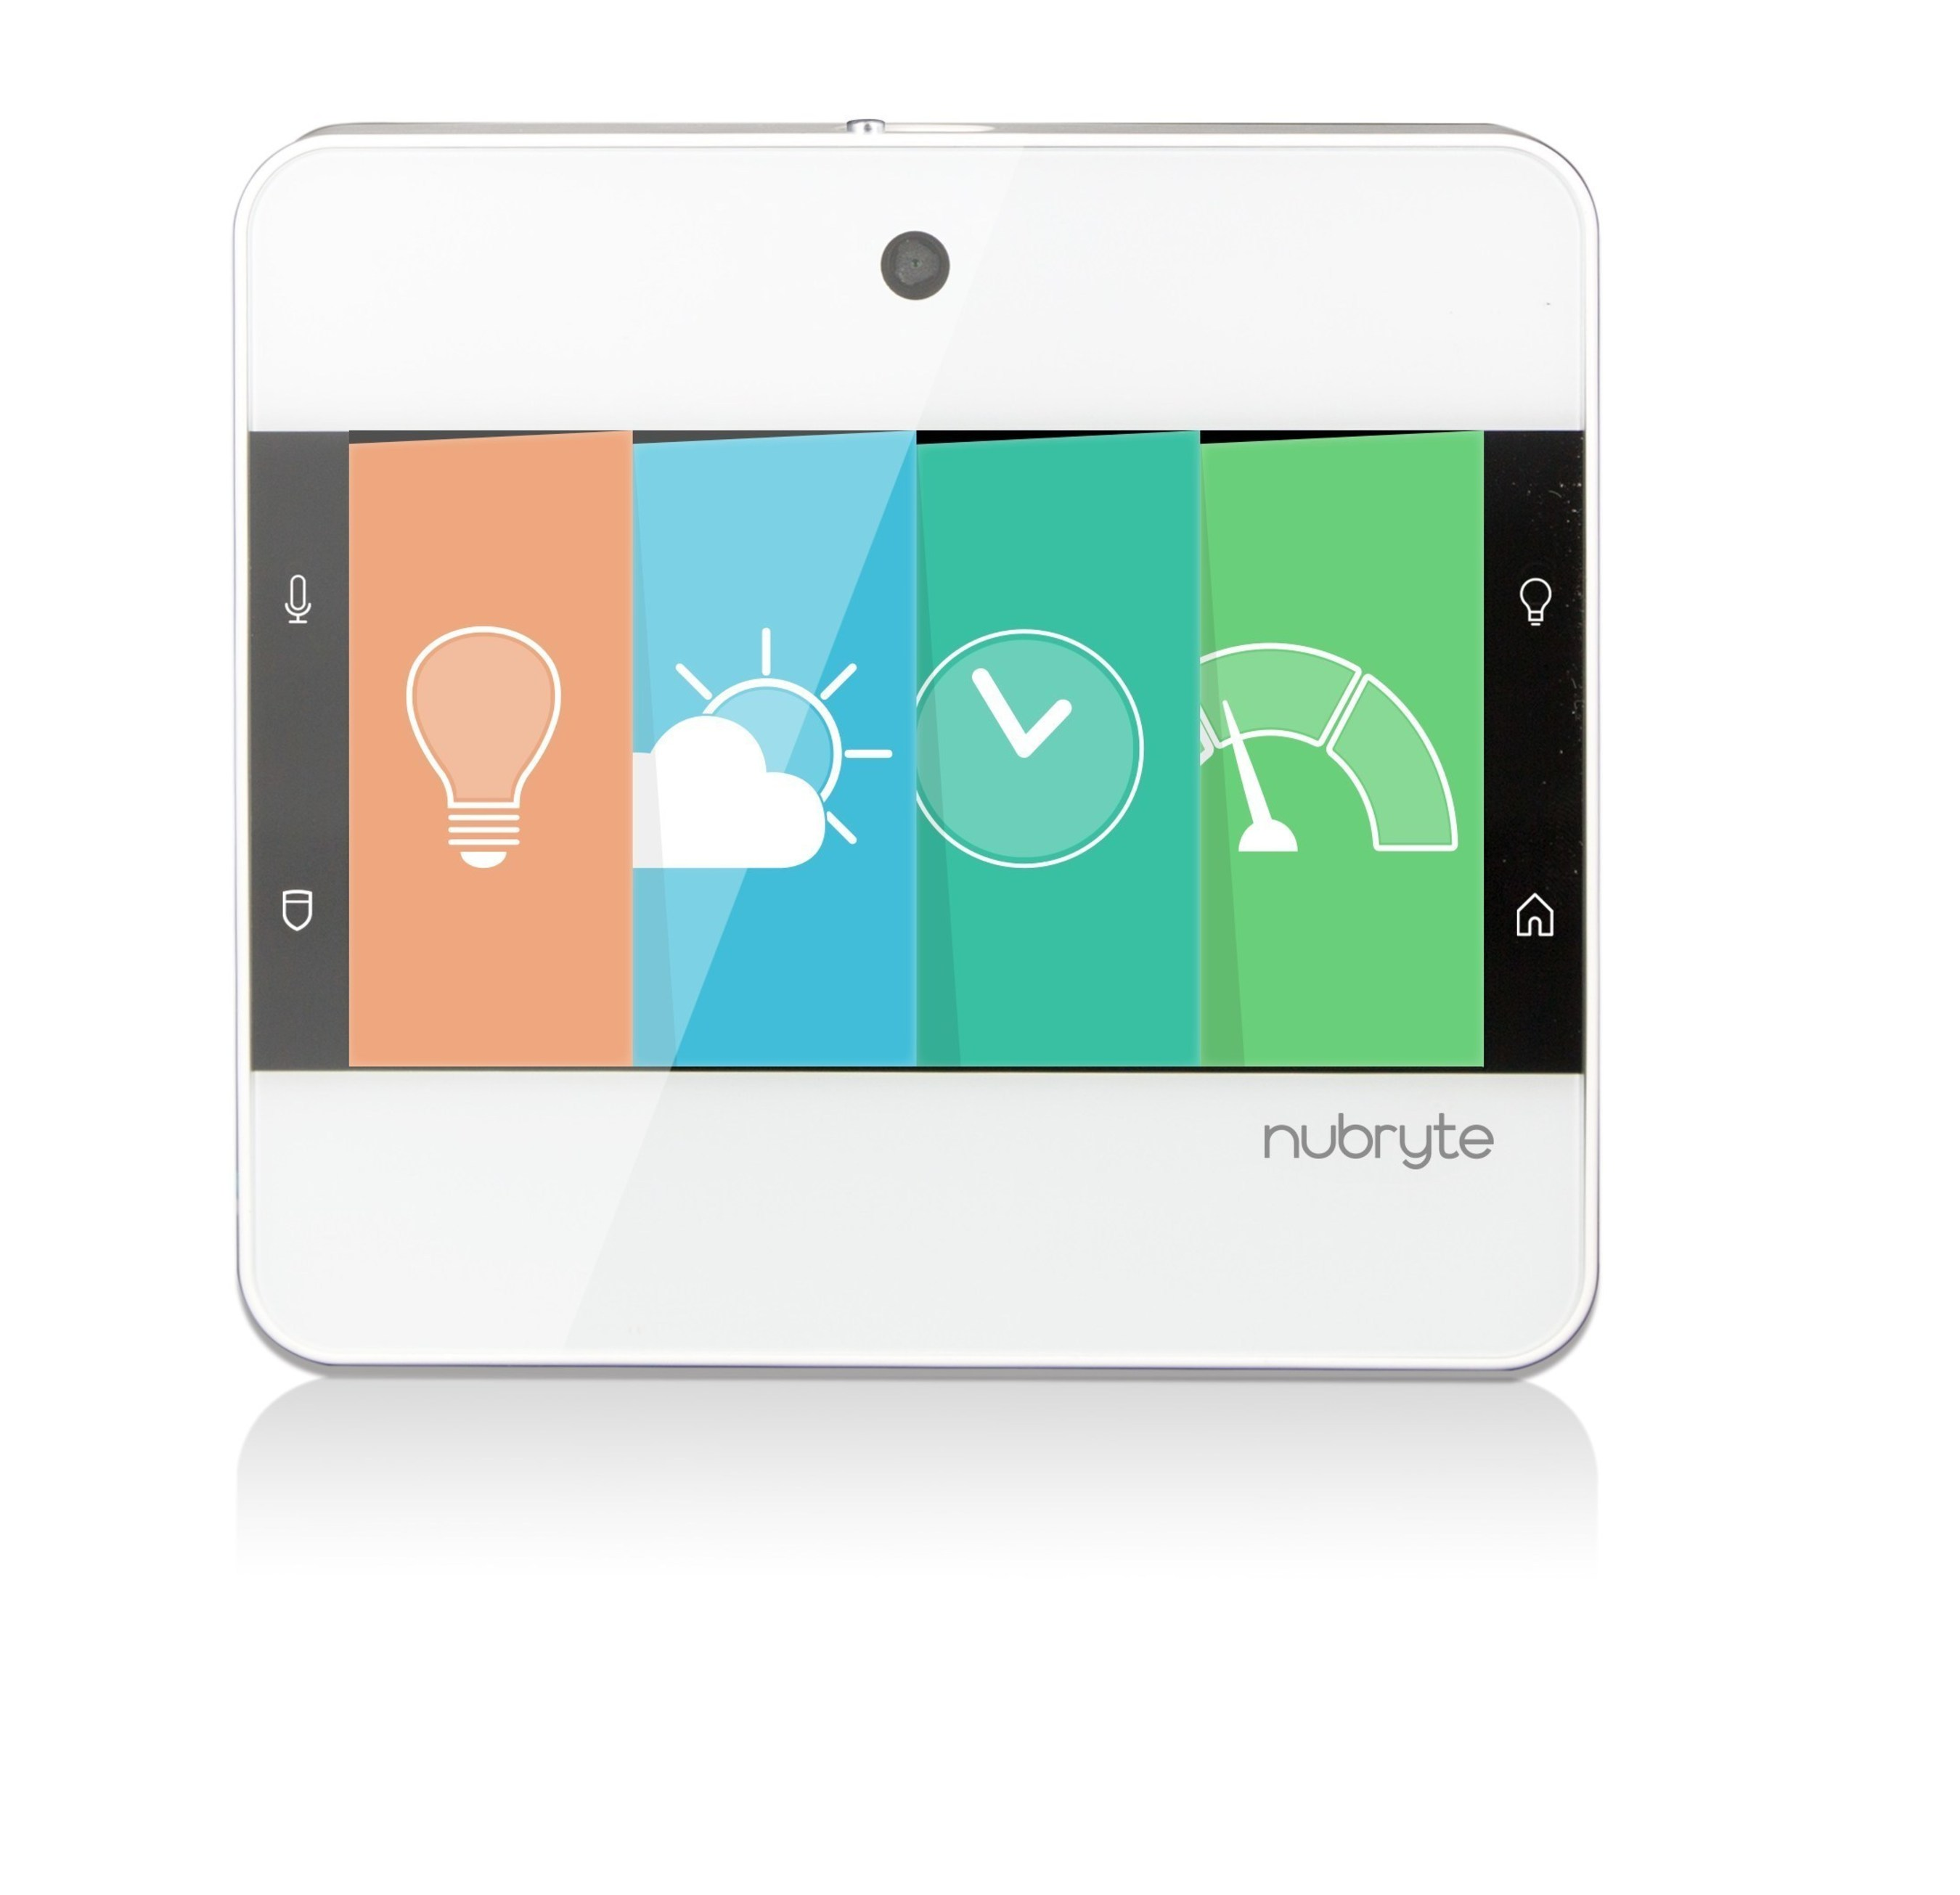 """Say goodbye to """"gadget clutter"""". NuBryte Touchpoint is a compact, all-in-one smart security and home automation solution - everything you need, right at the light switch."""